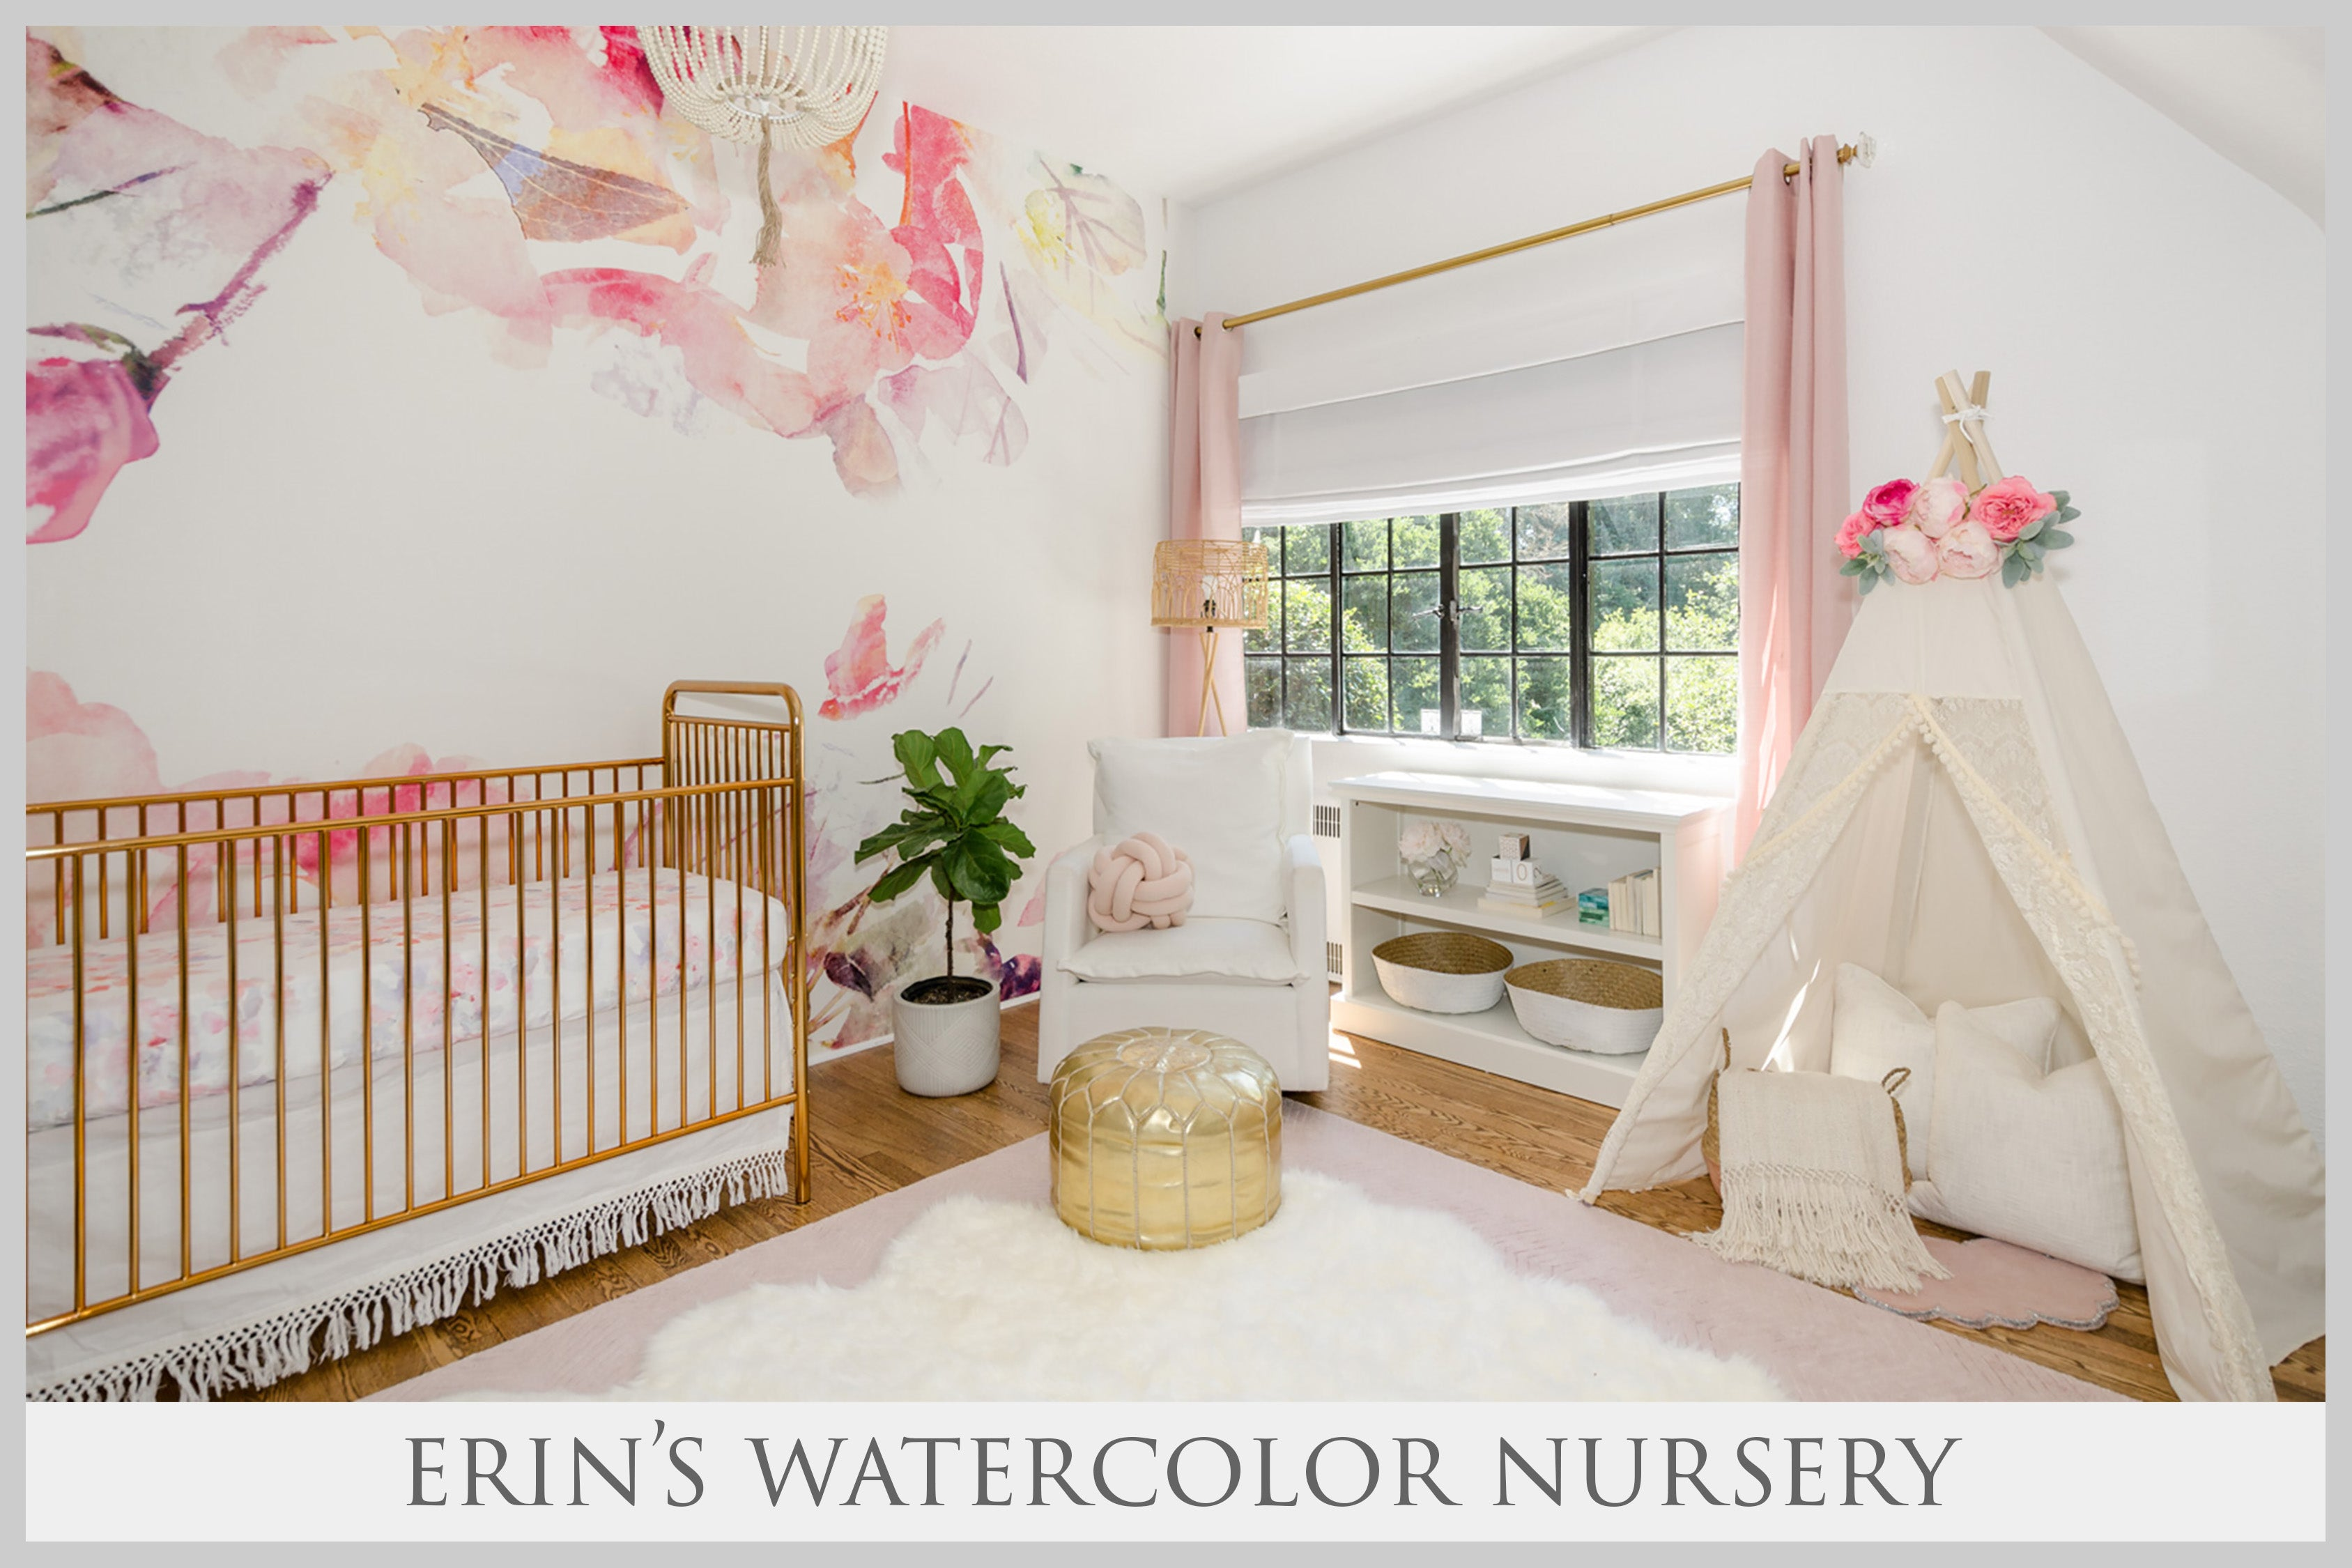 Erin's Watercolor Nursery by curated nest